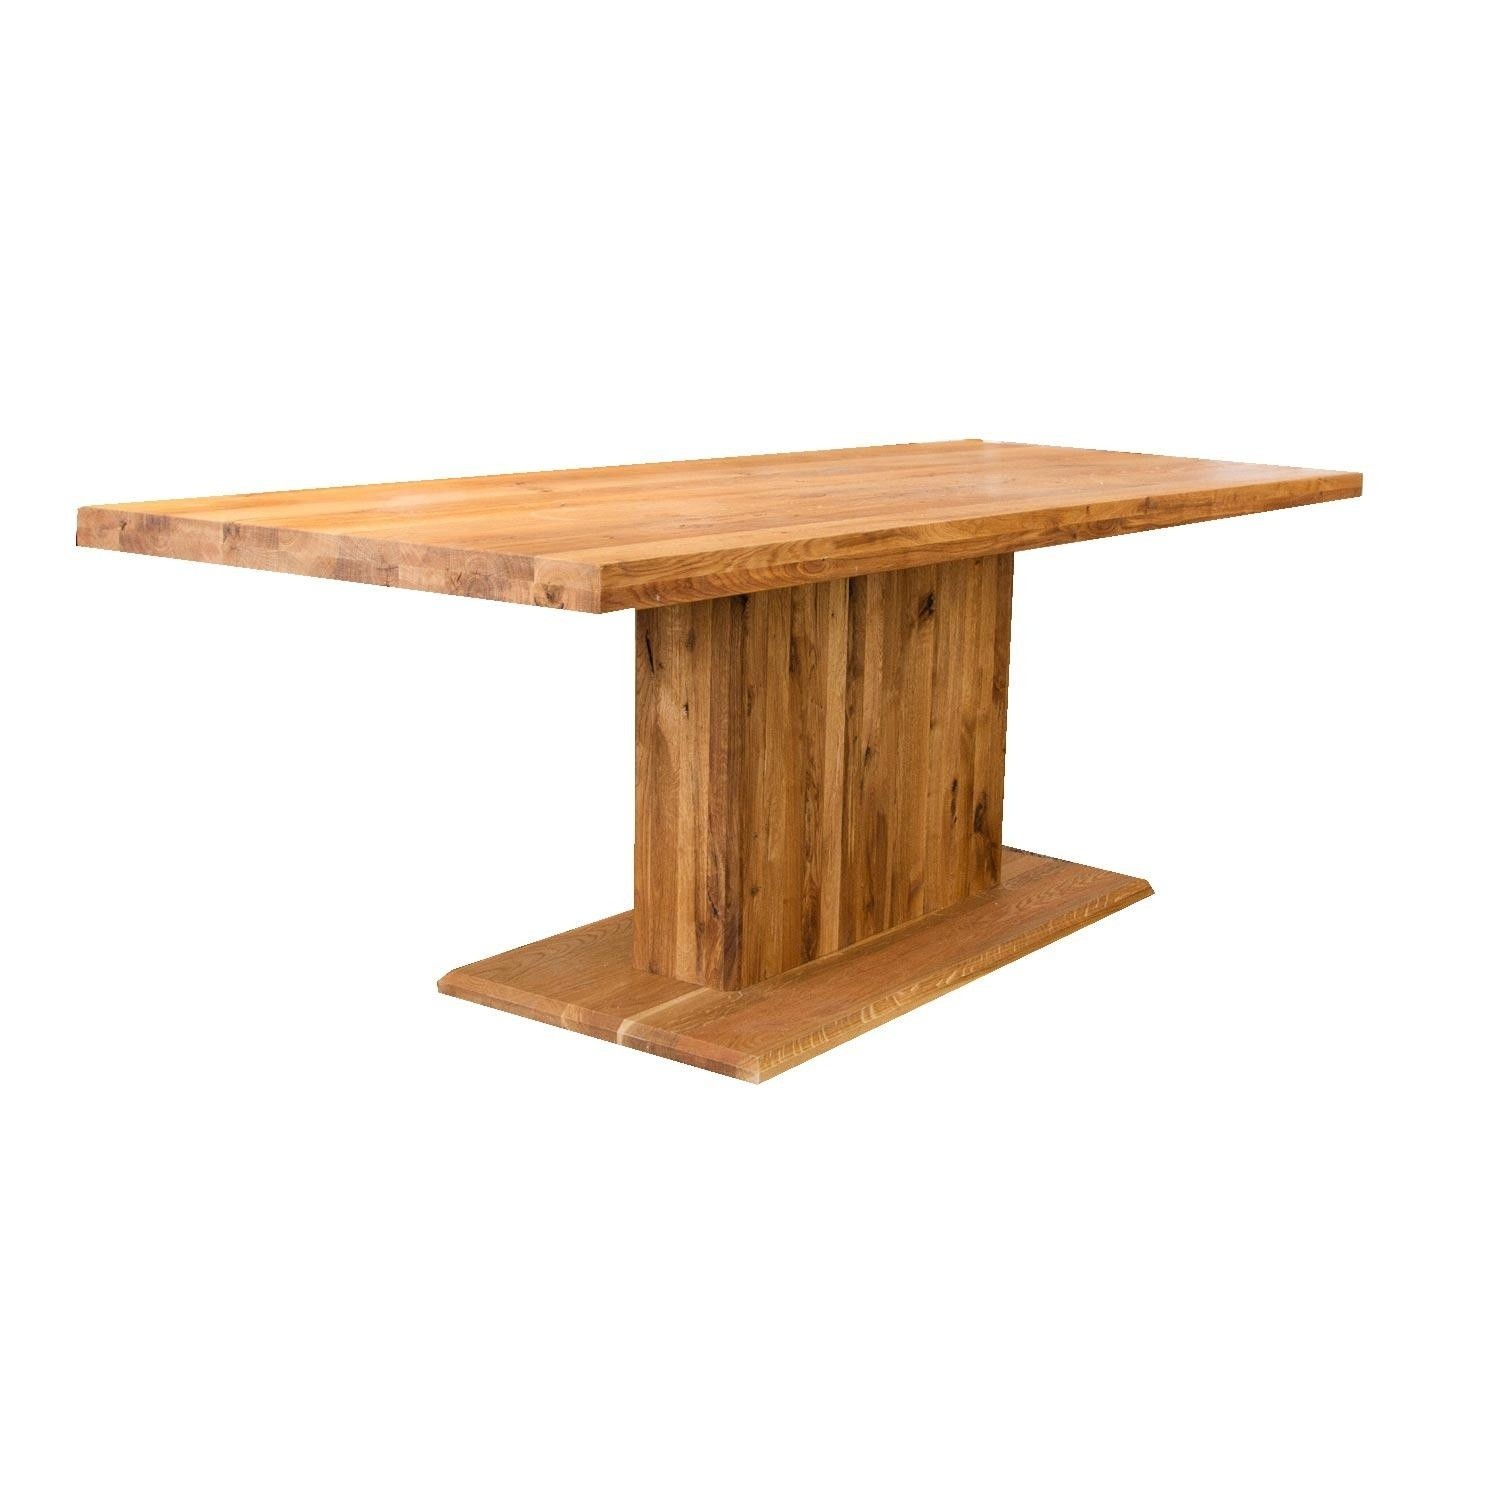 Echtholz Esstisch Eiche Ozelot Dining Table With Central Support